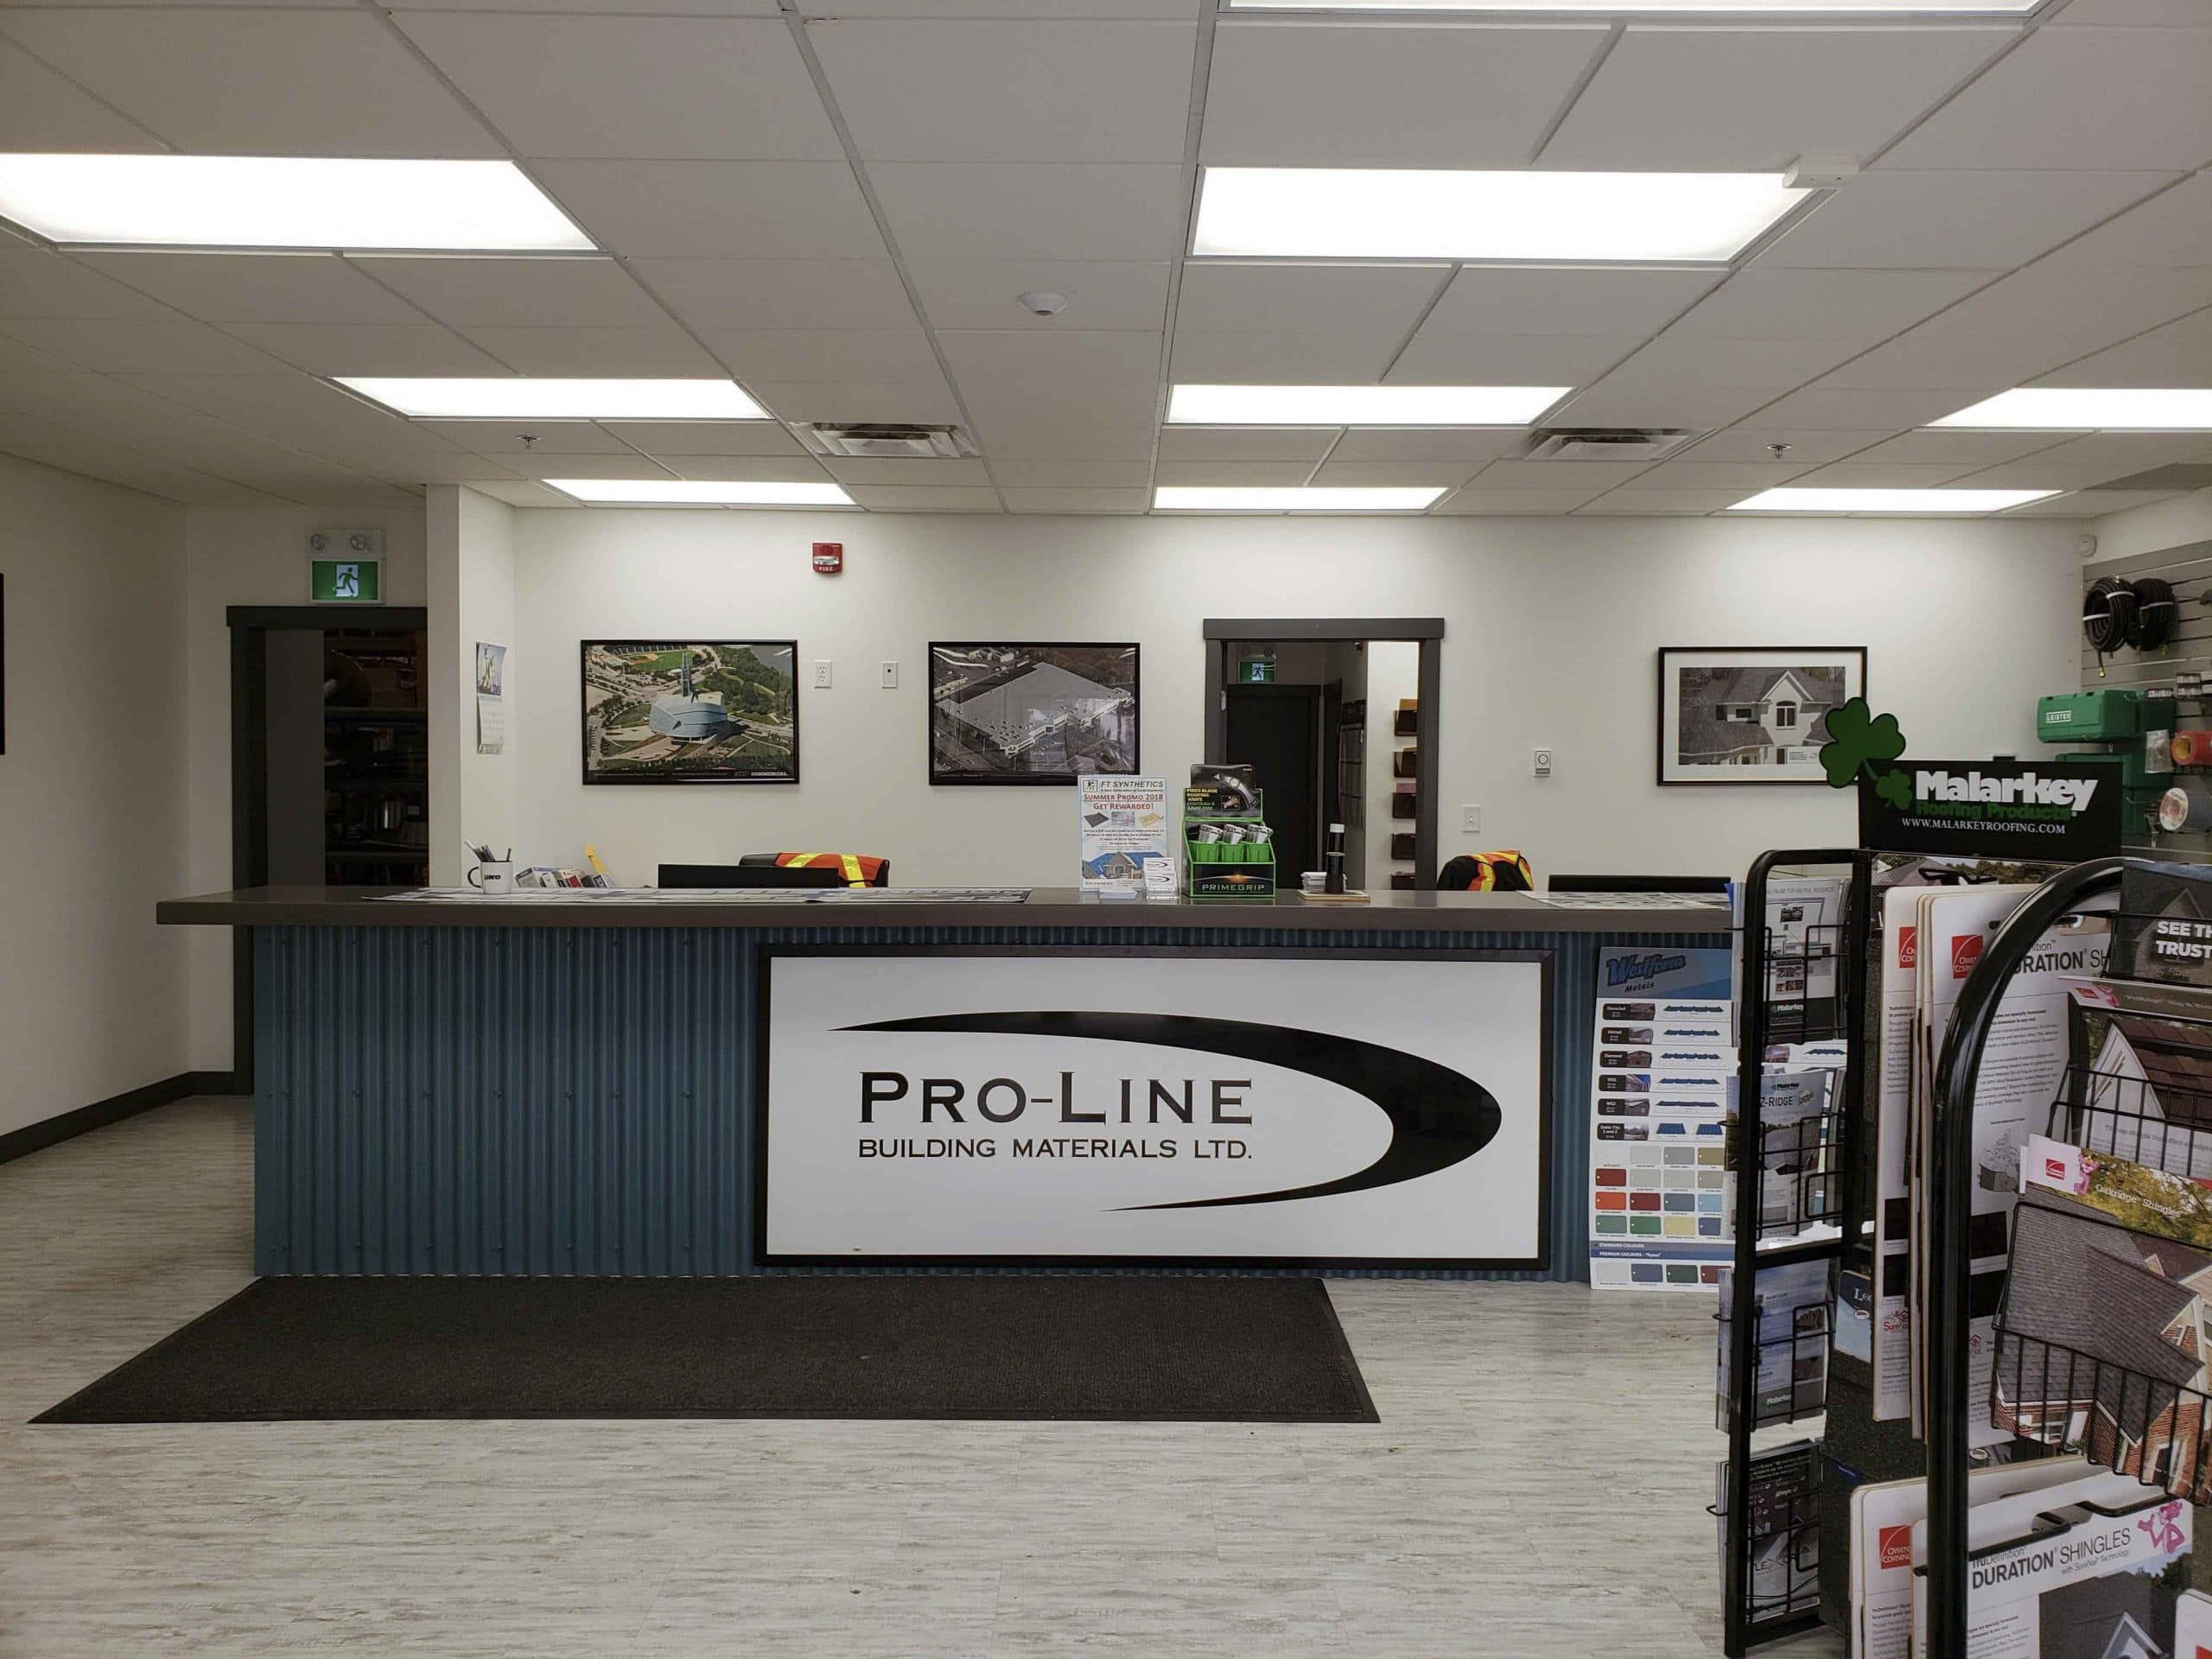 proline building construction materials interior image